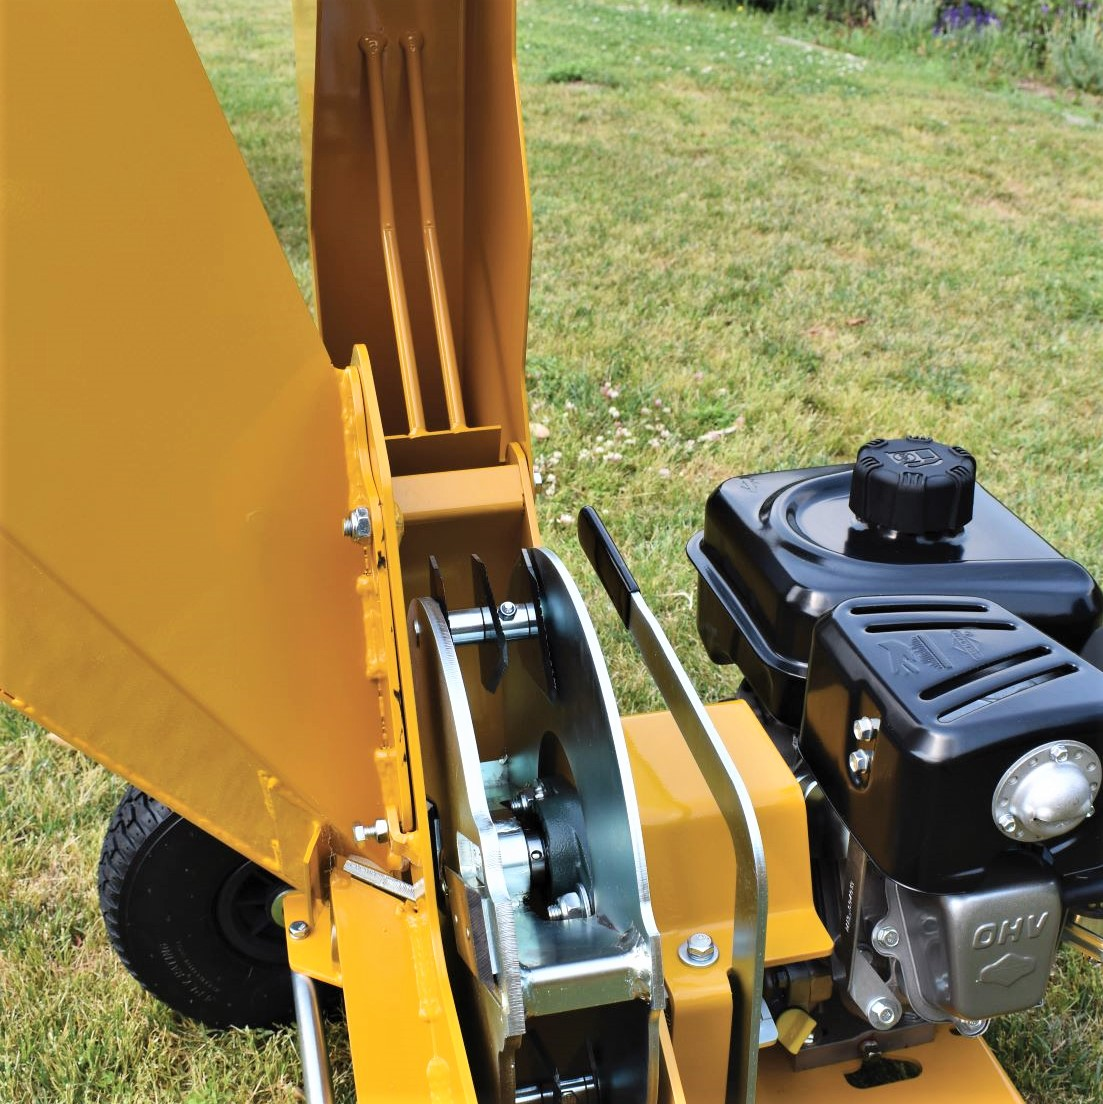 TIGER Chipper Shredder reduces garden waste to a consistent fine mulch with help of fixed gates